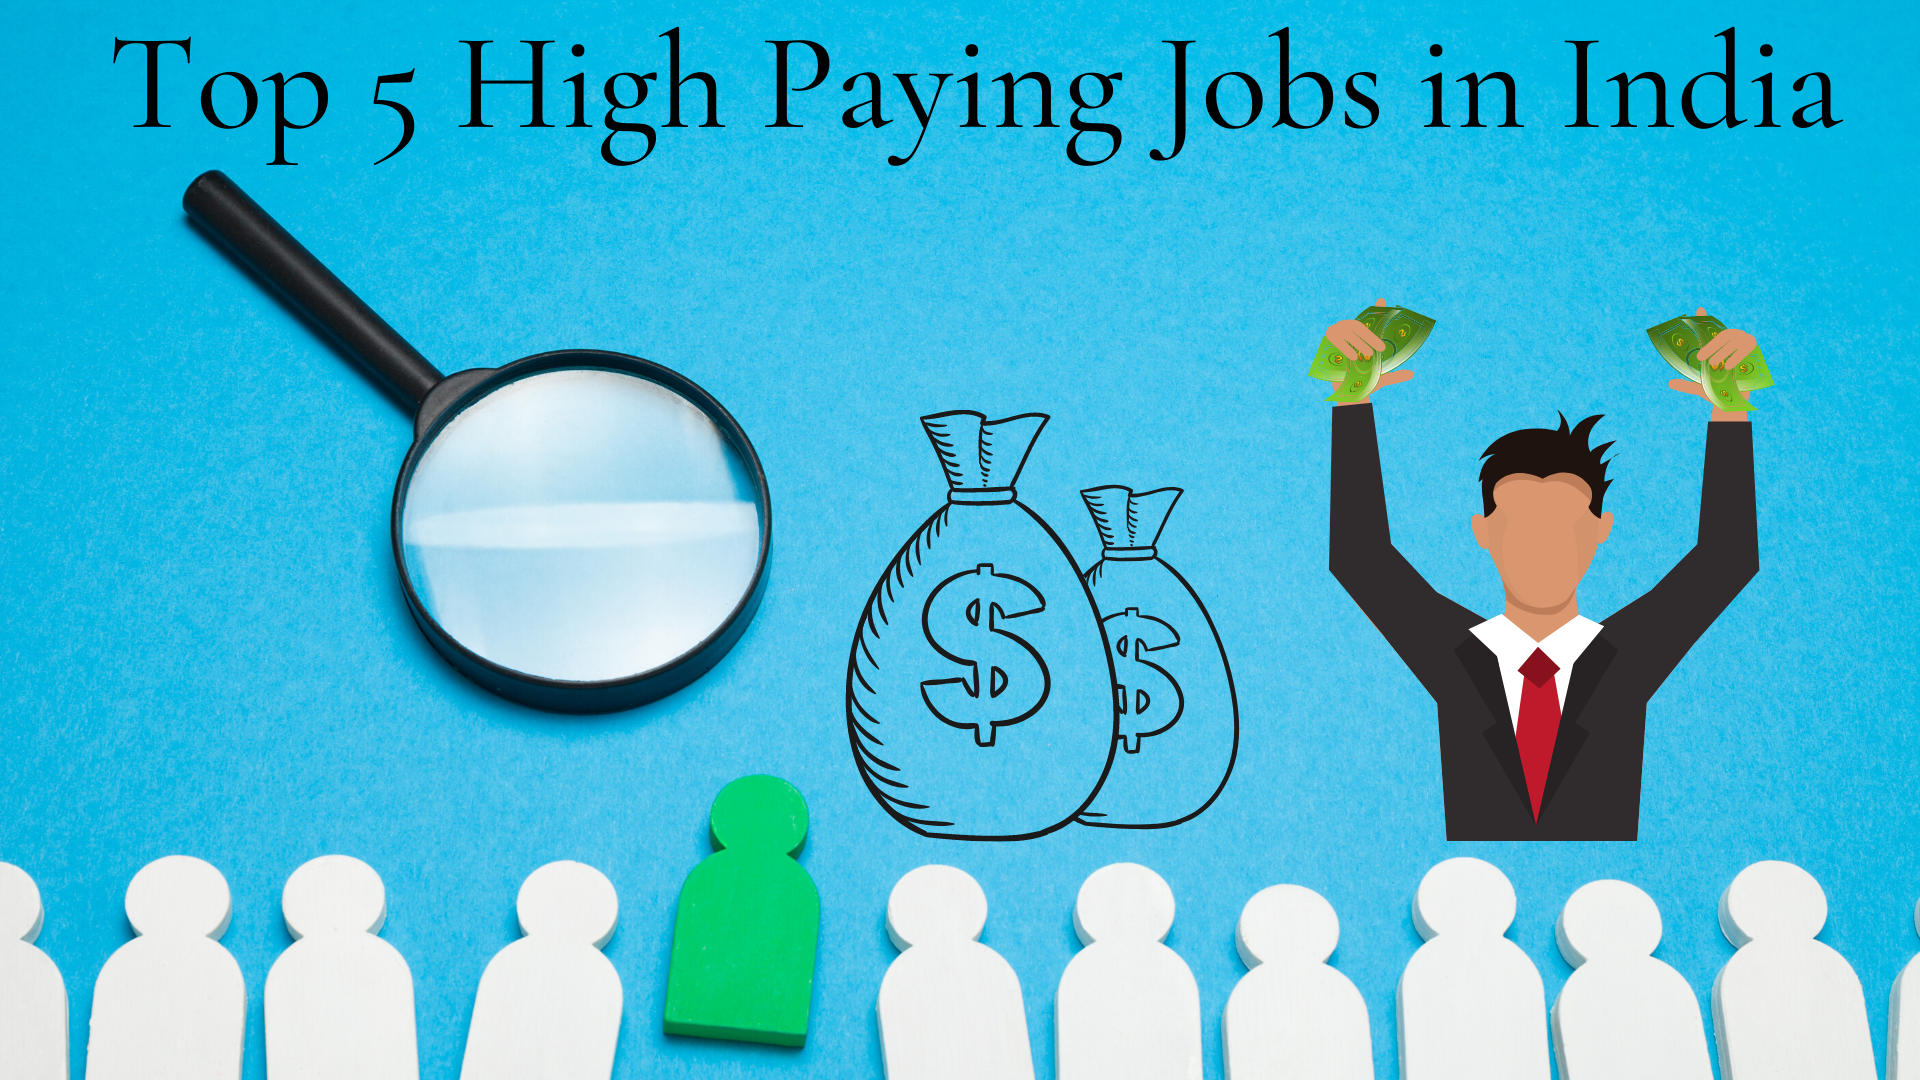 Top 5 High Paying Jobs in India